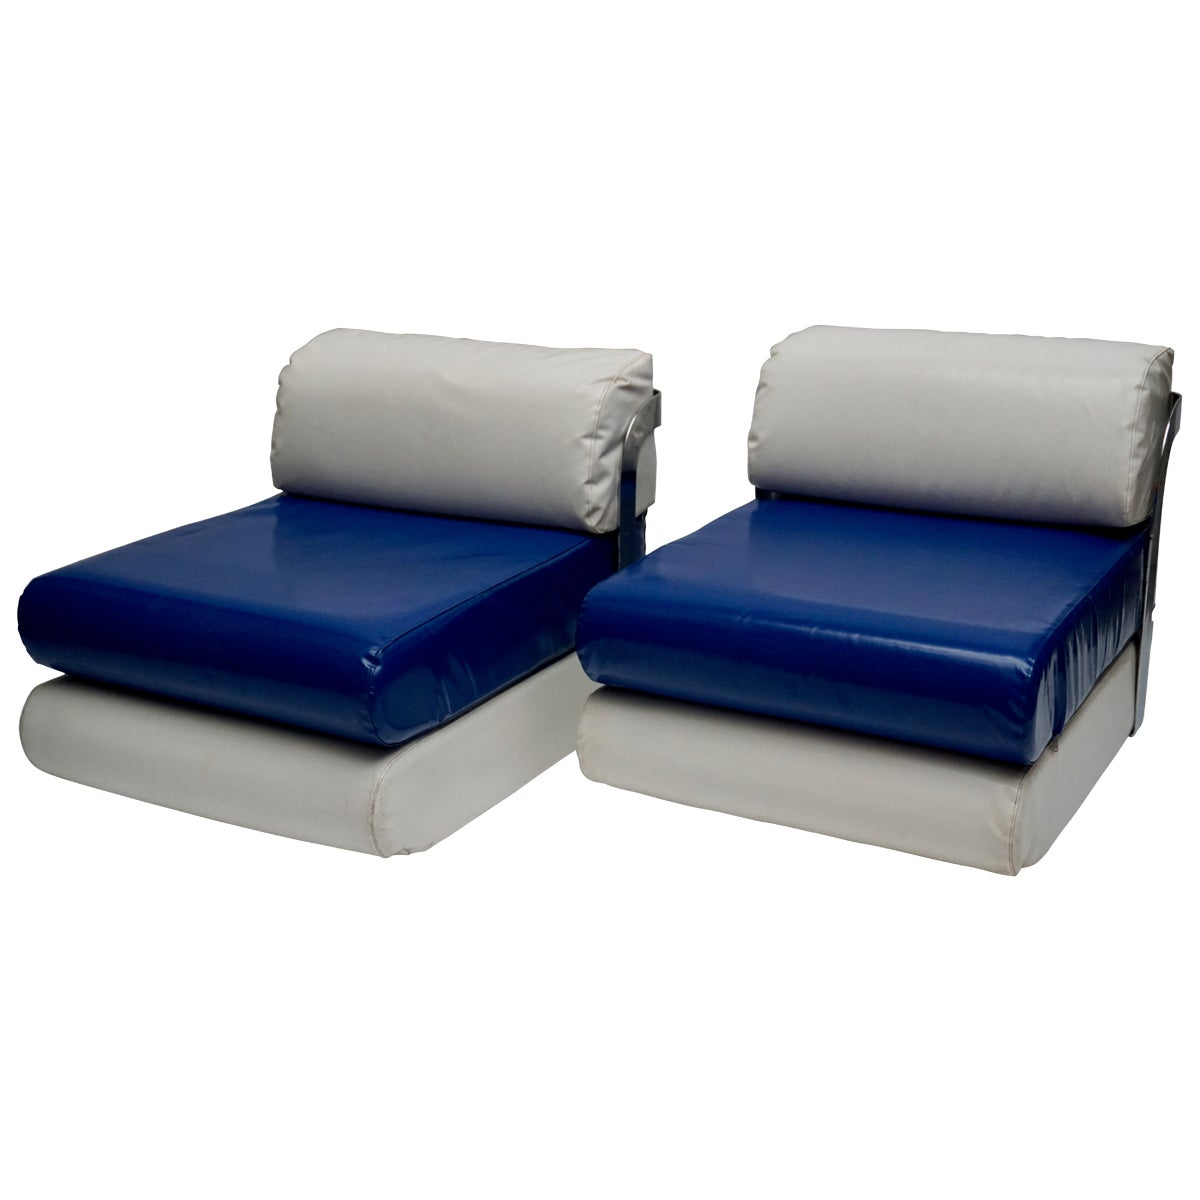 Two Italian Lounge Chairs in Blue and White